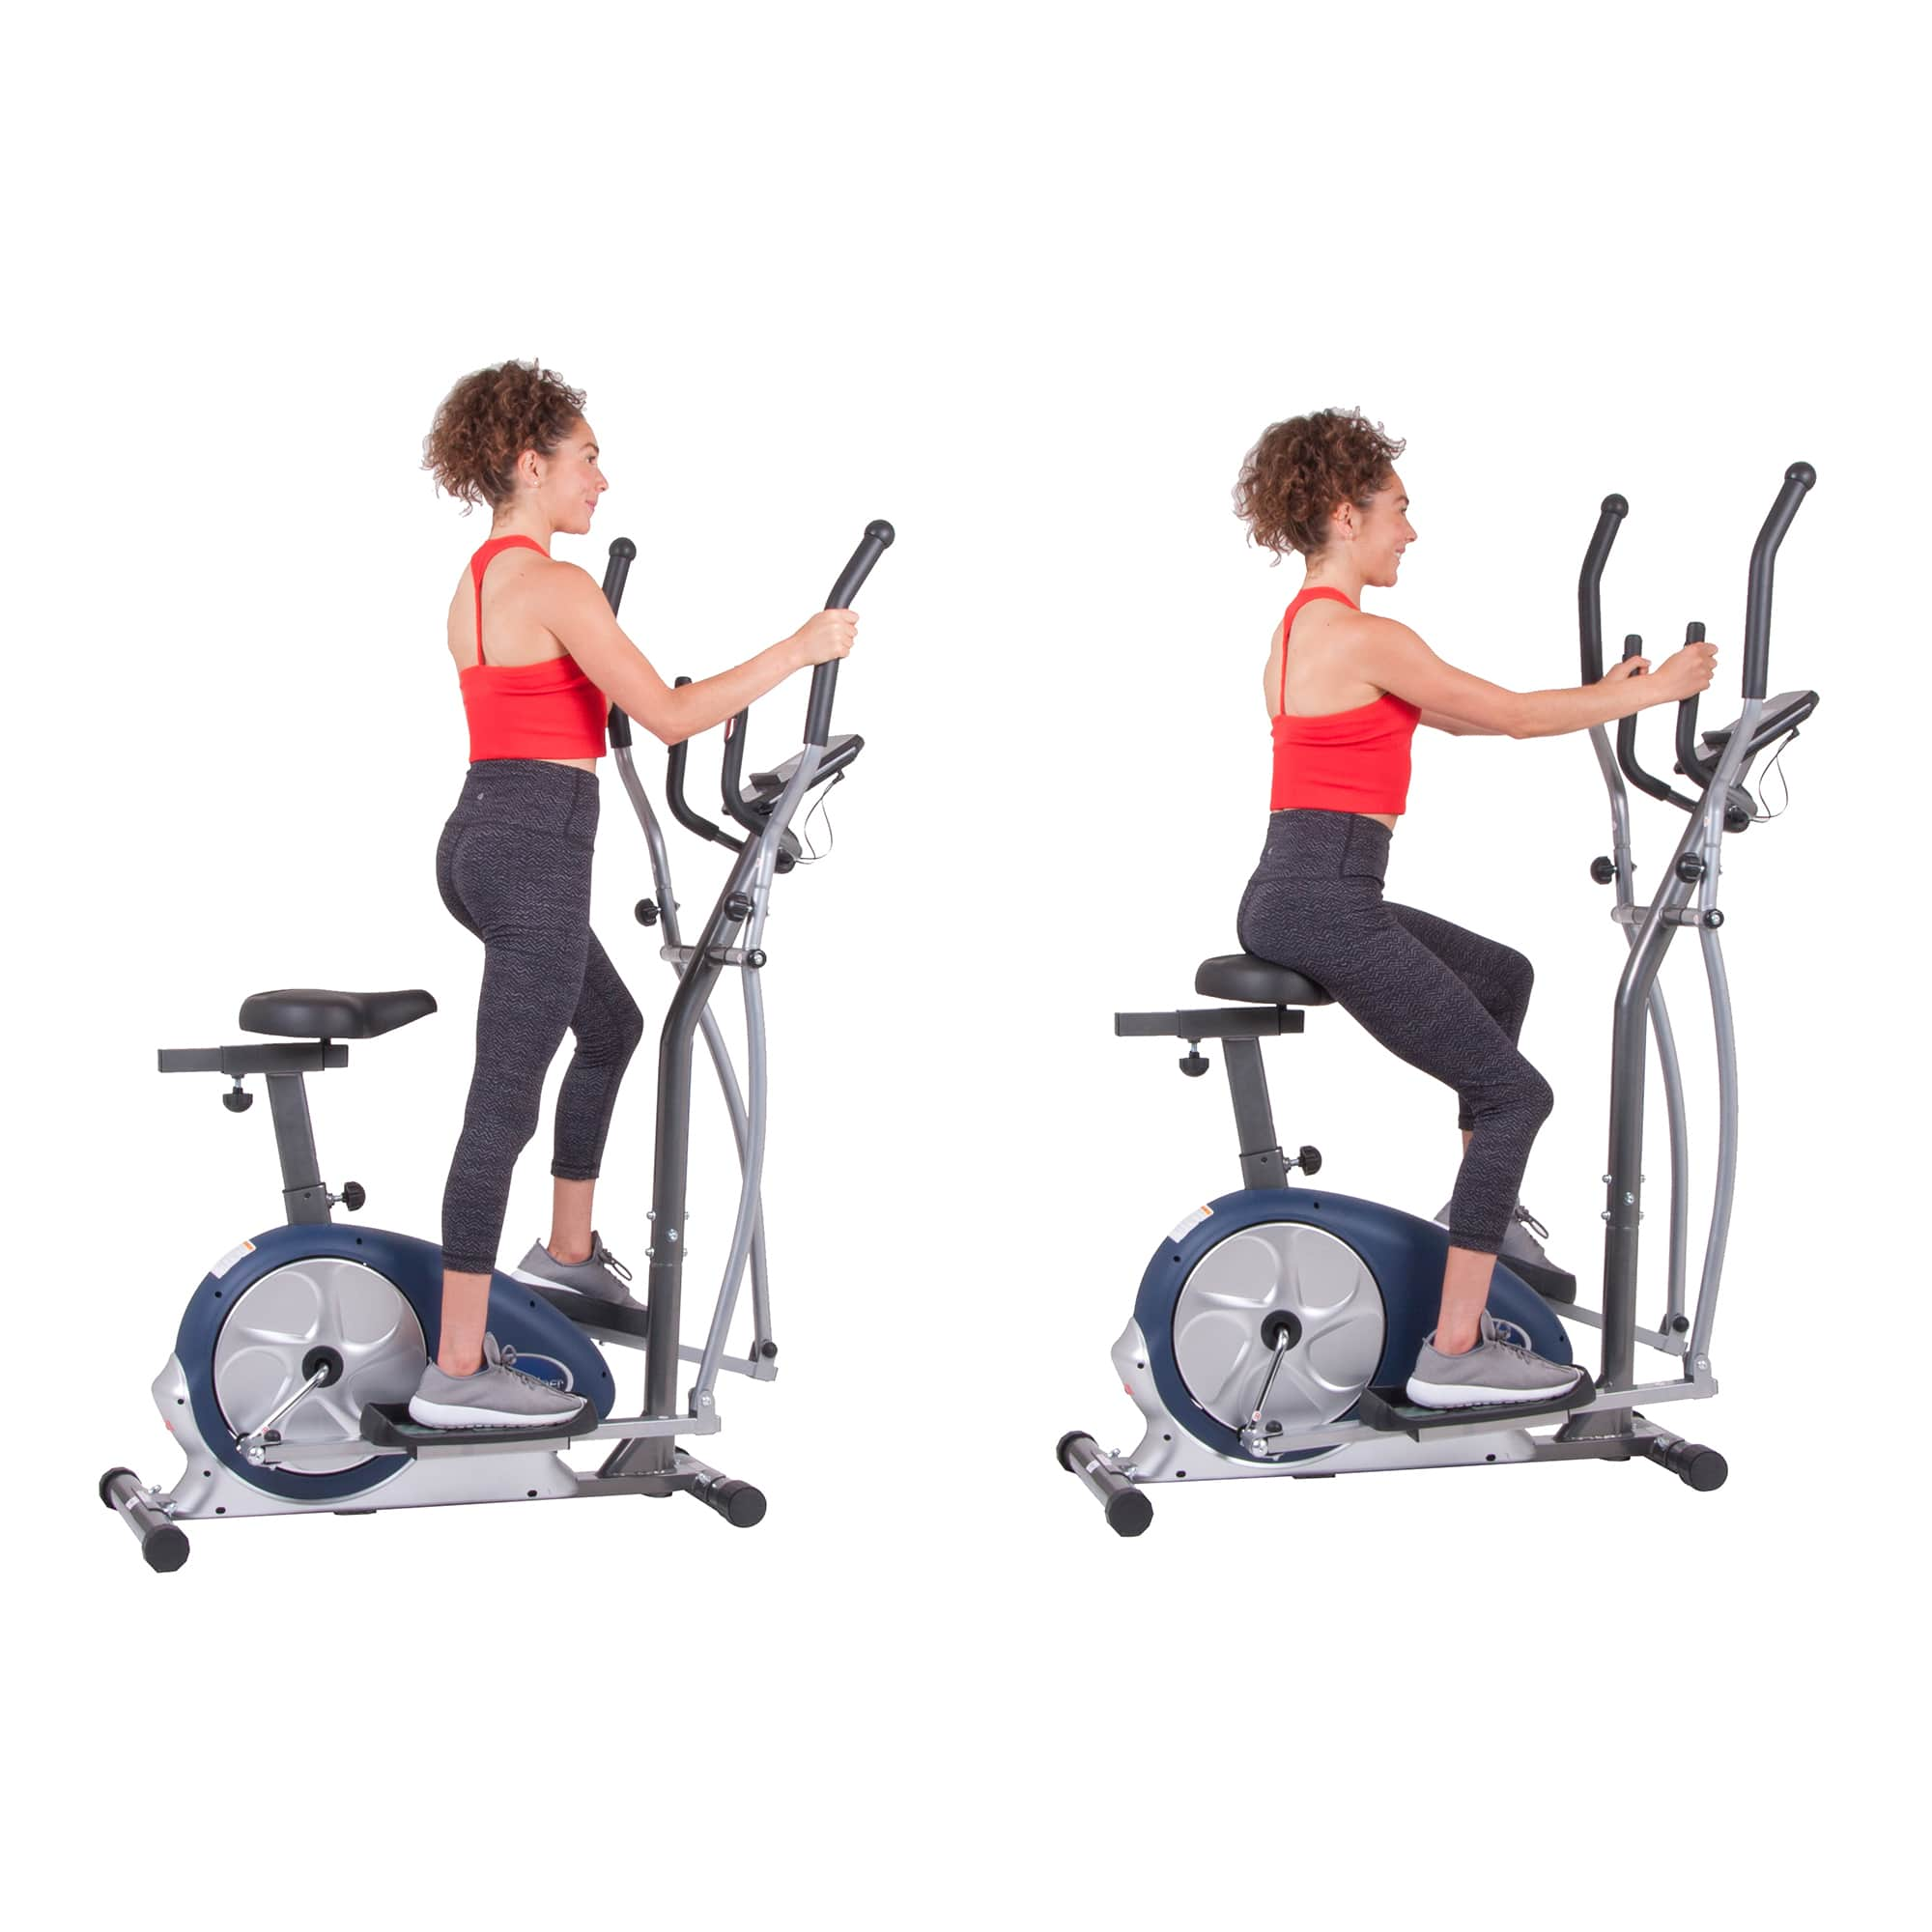 Body Champ BRM3671 Elliptical and Exercise Bike Dual Trainer $160 + Free shipping